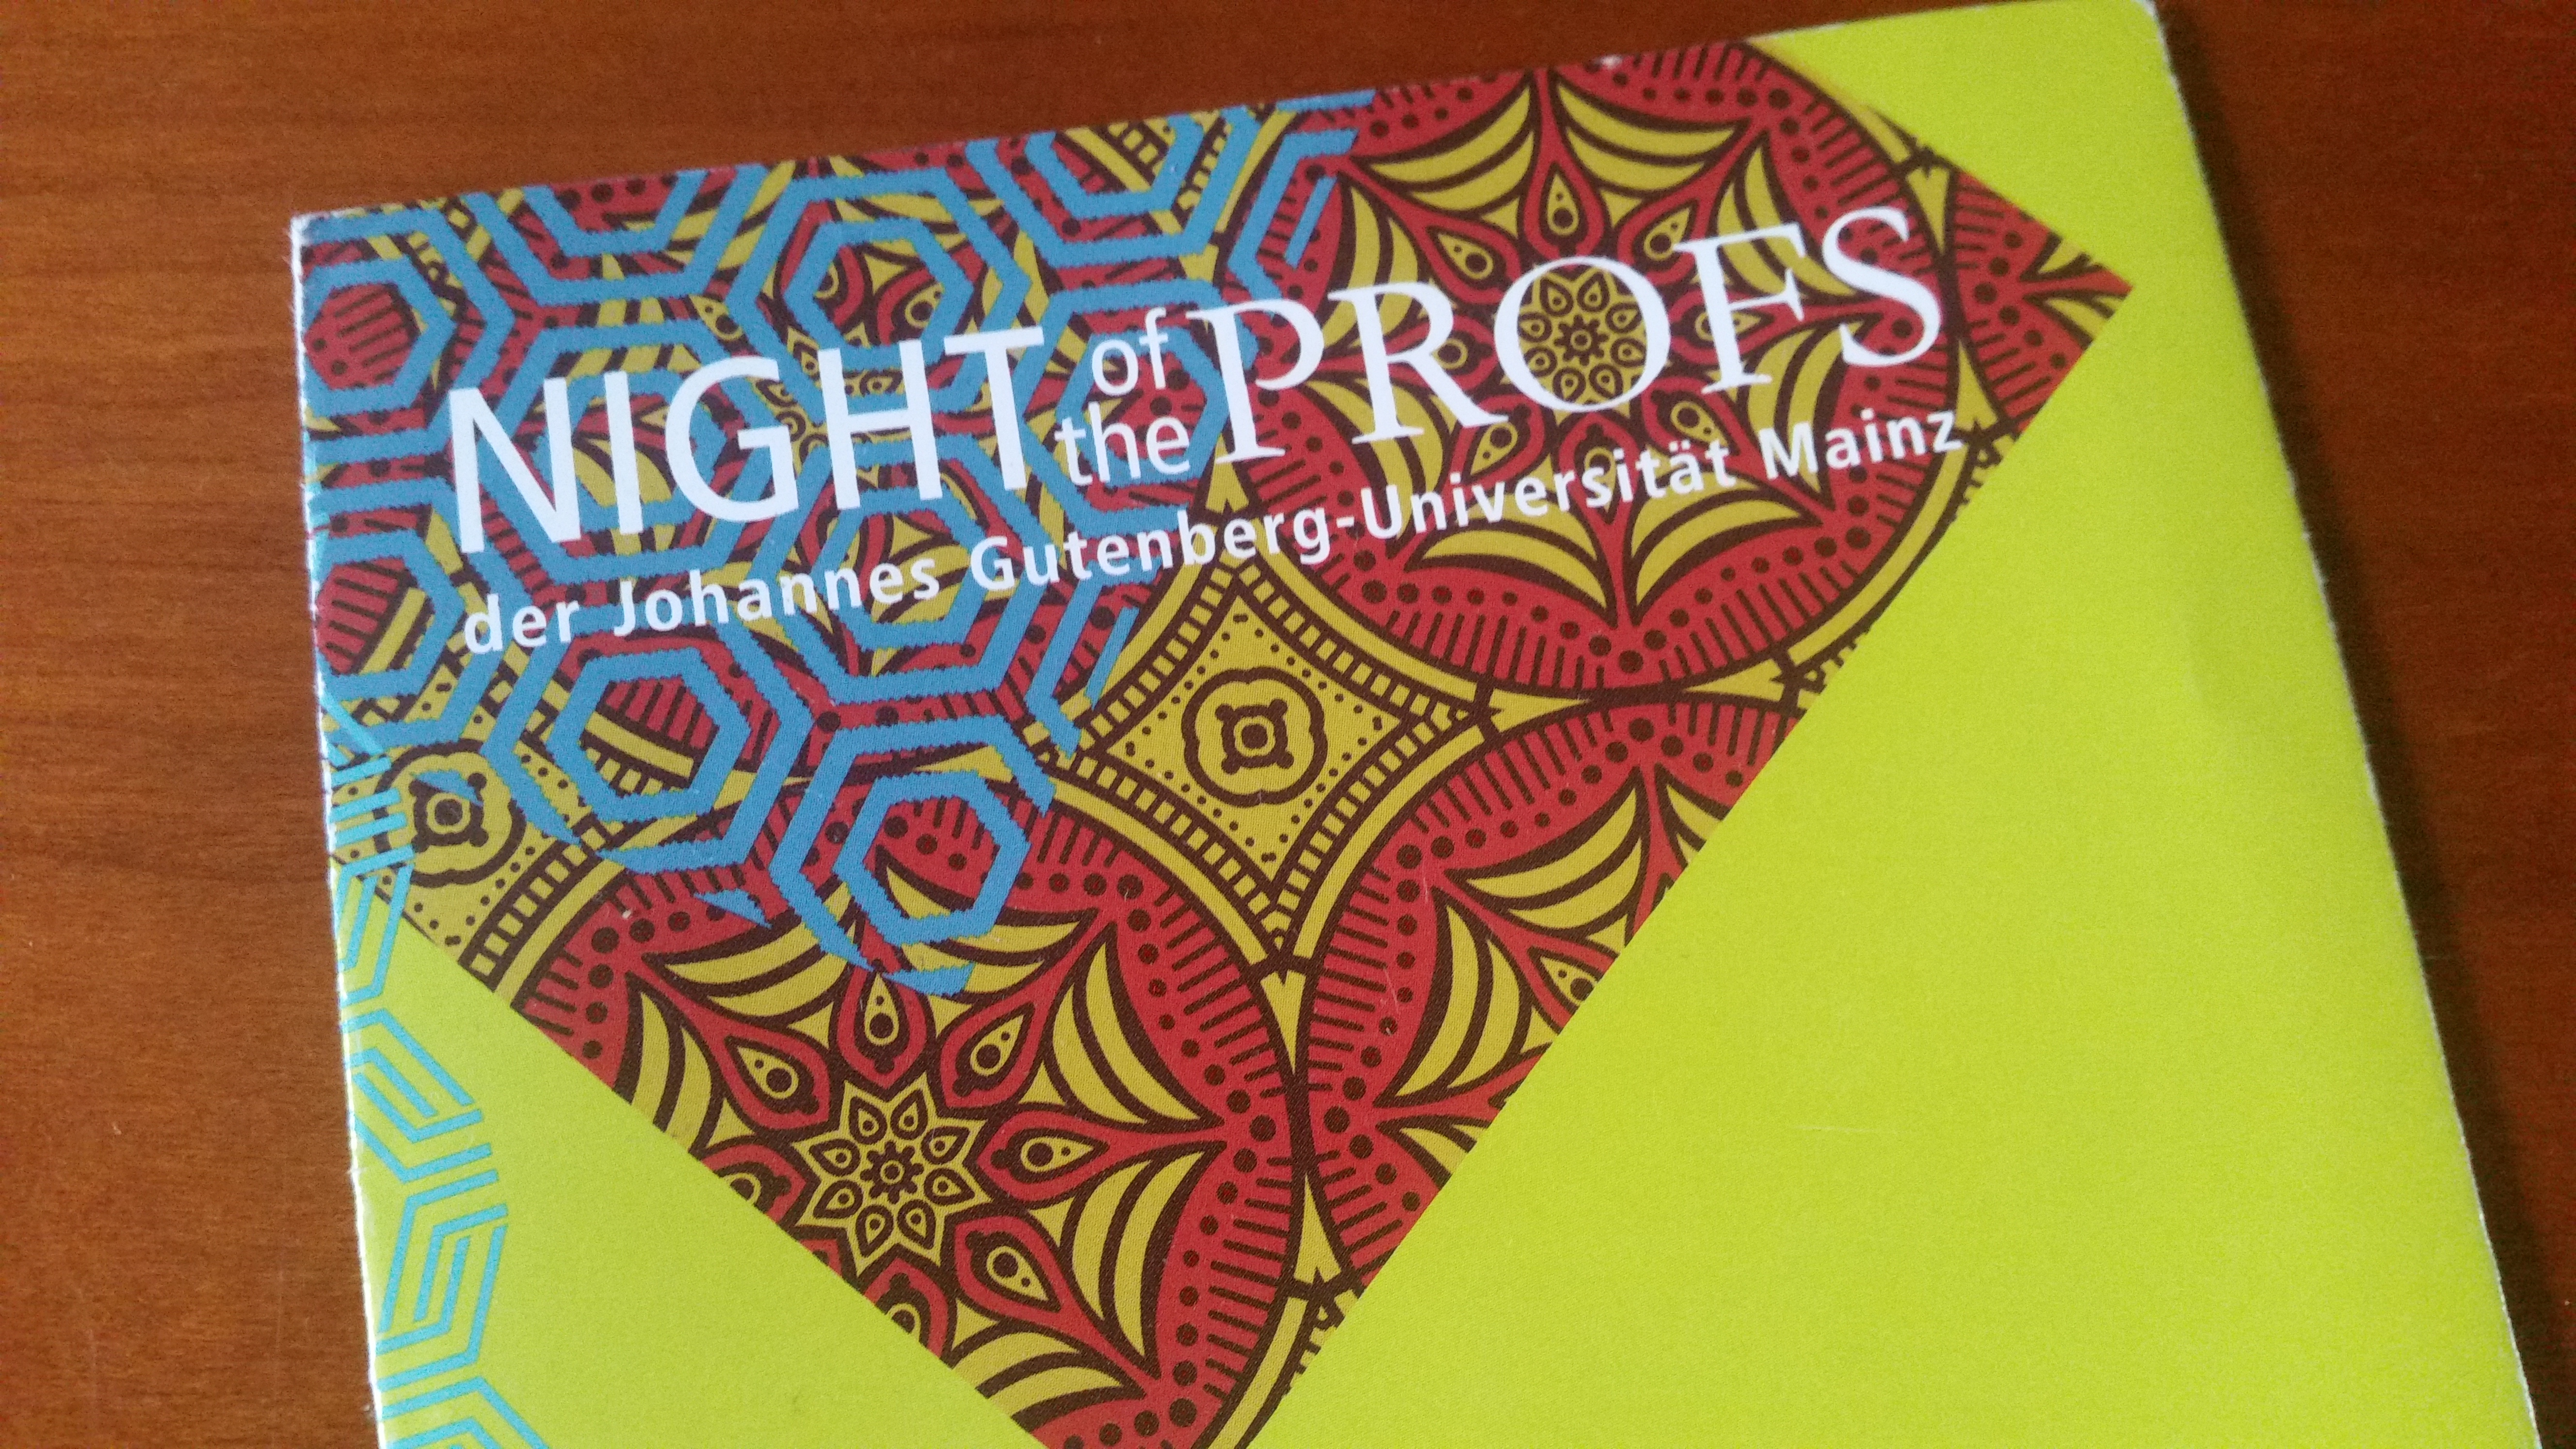 THE NIGHT OF THE ETHNO-PROFS – ETHNOLOGIE IN DER ÖFFENTLICHKEIT